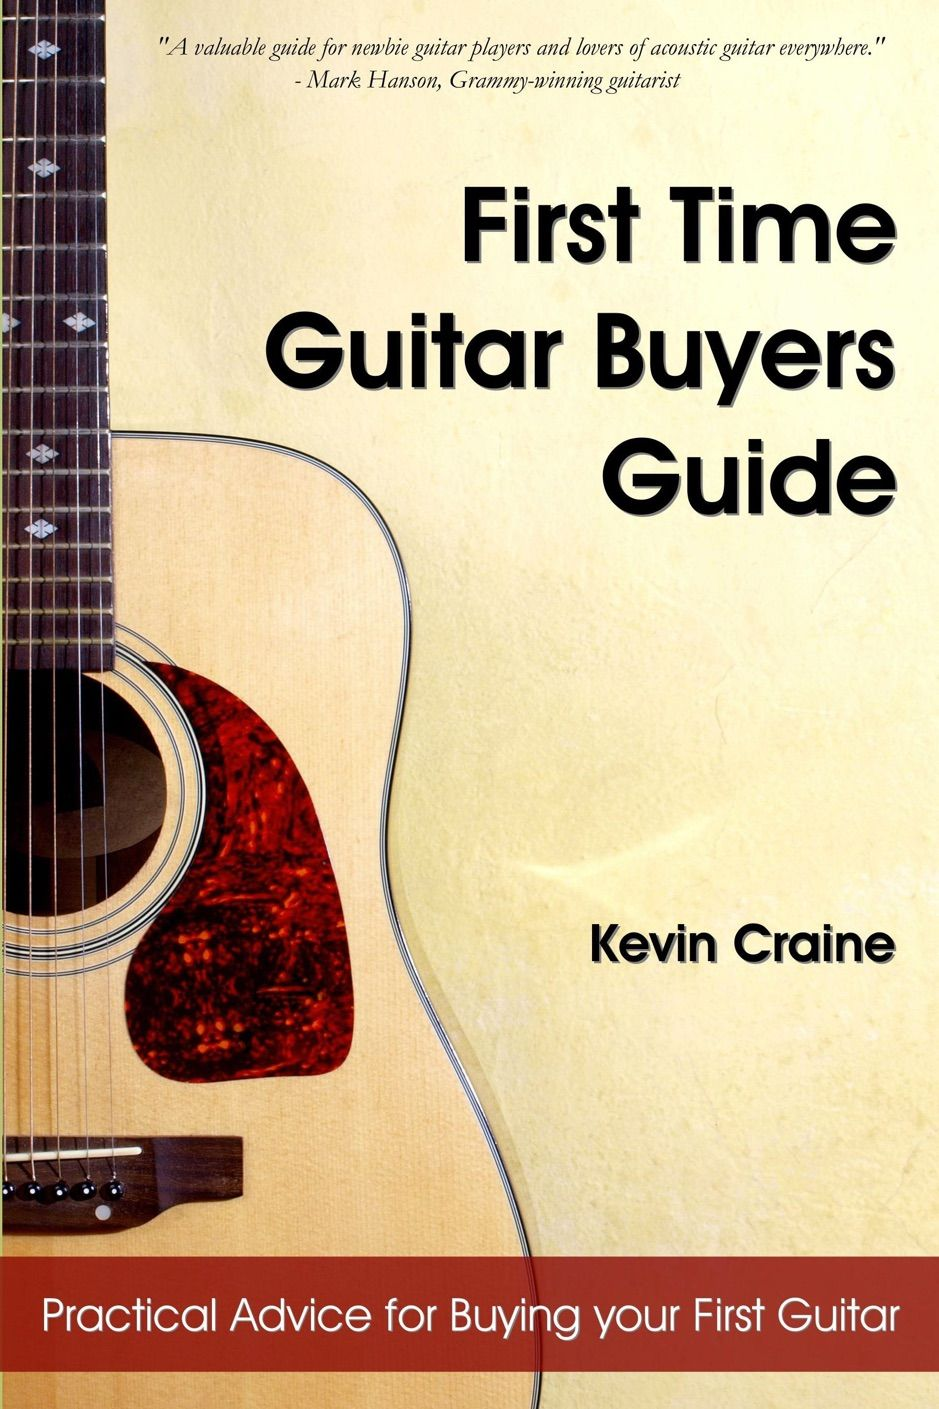 A Zfirst Time Guitar Buyers Guide Ad Buyers Guide Guitar Download Ad Guitar Practical Advice Best Acoustic Guitar